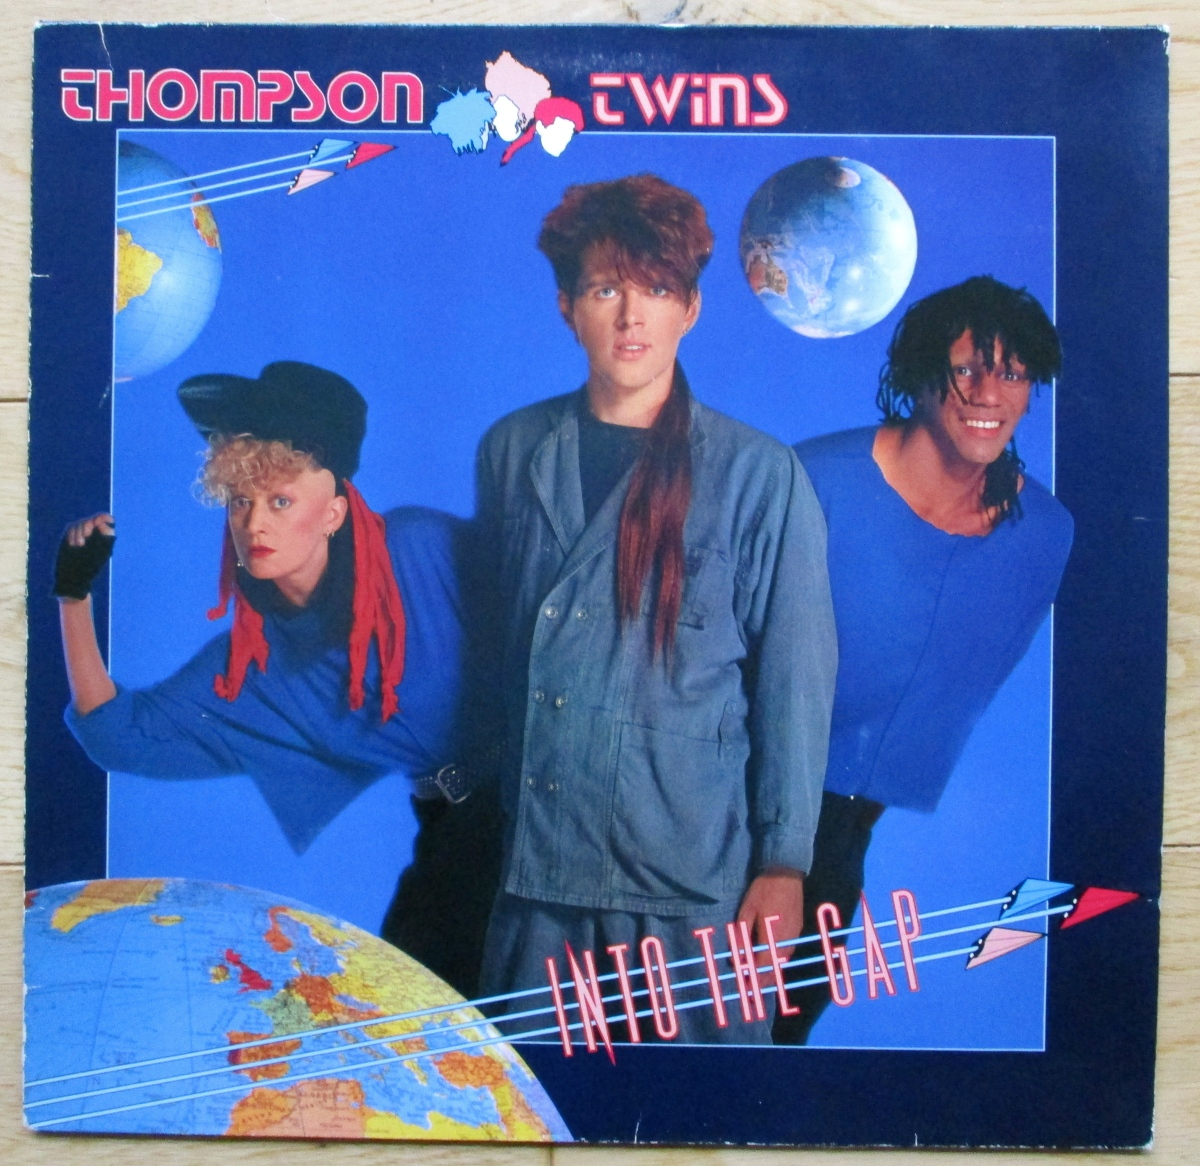 Vintage Vinyl in the charity shop: Into The Gap by the Thompson Twins